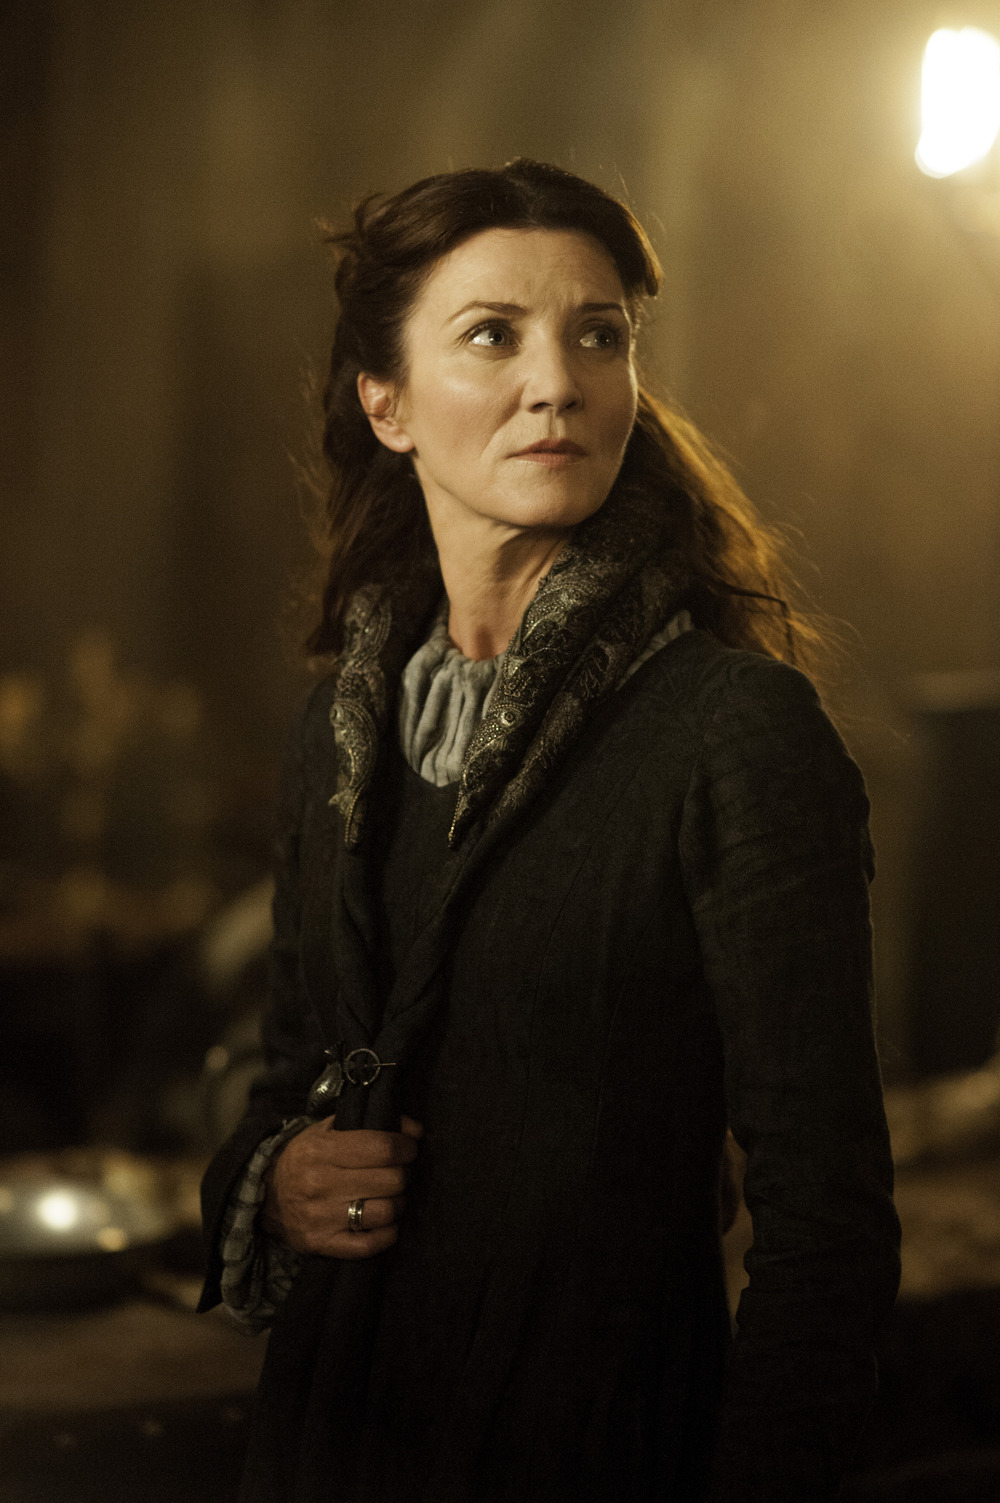 Game of Thrones Season 3 Spoiler: Catelyn Stark Dies!